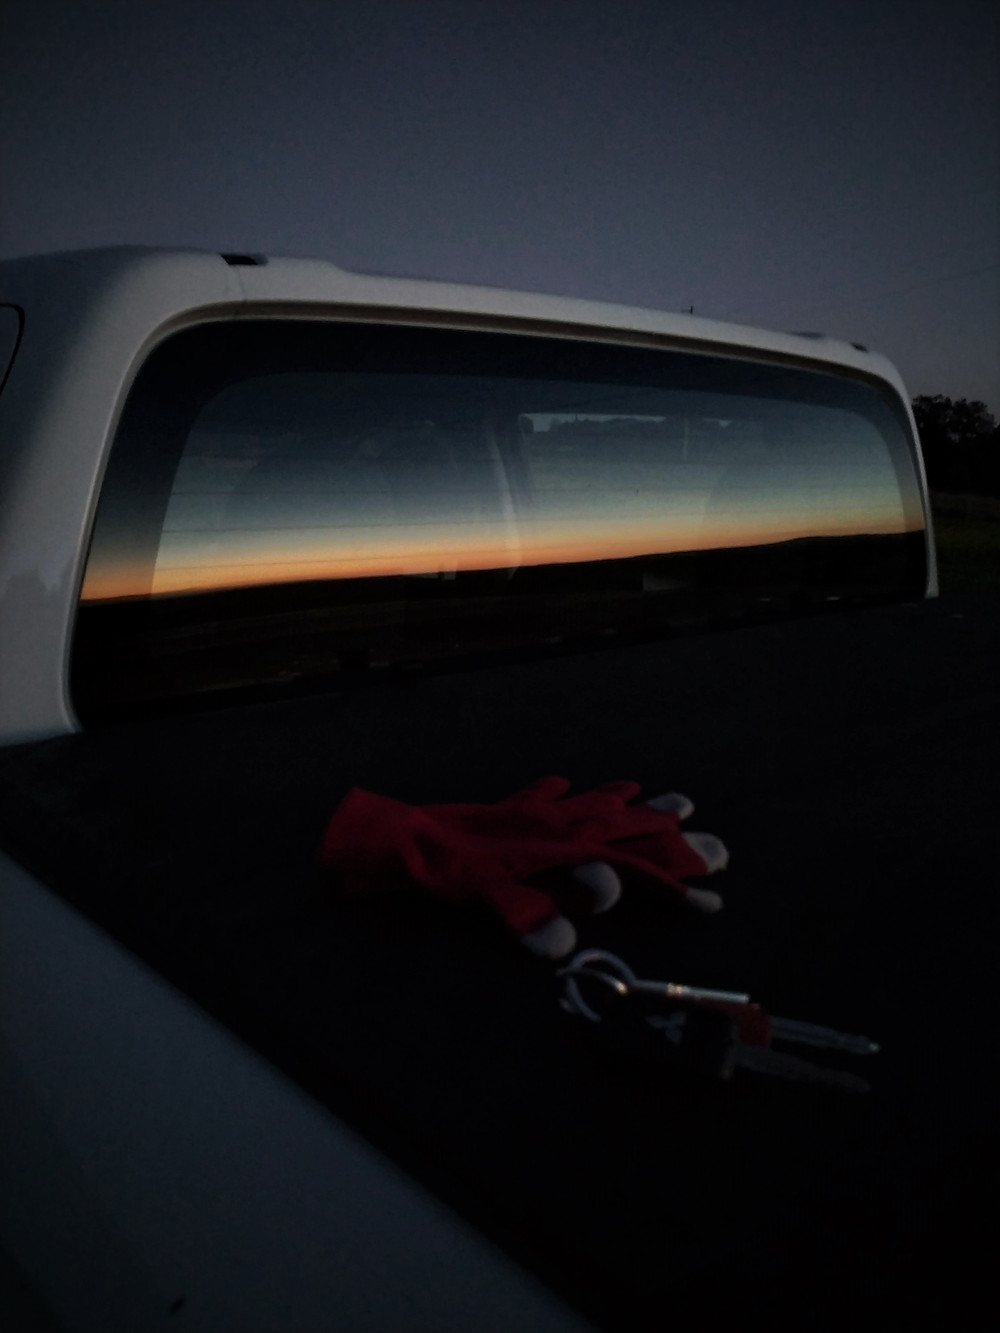 Sunset reflection in truck window